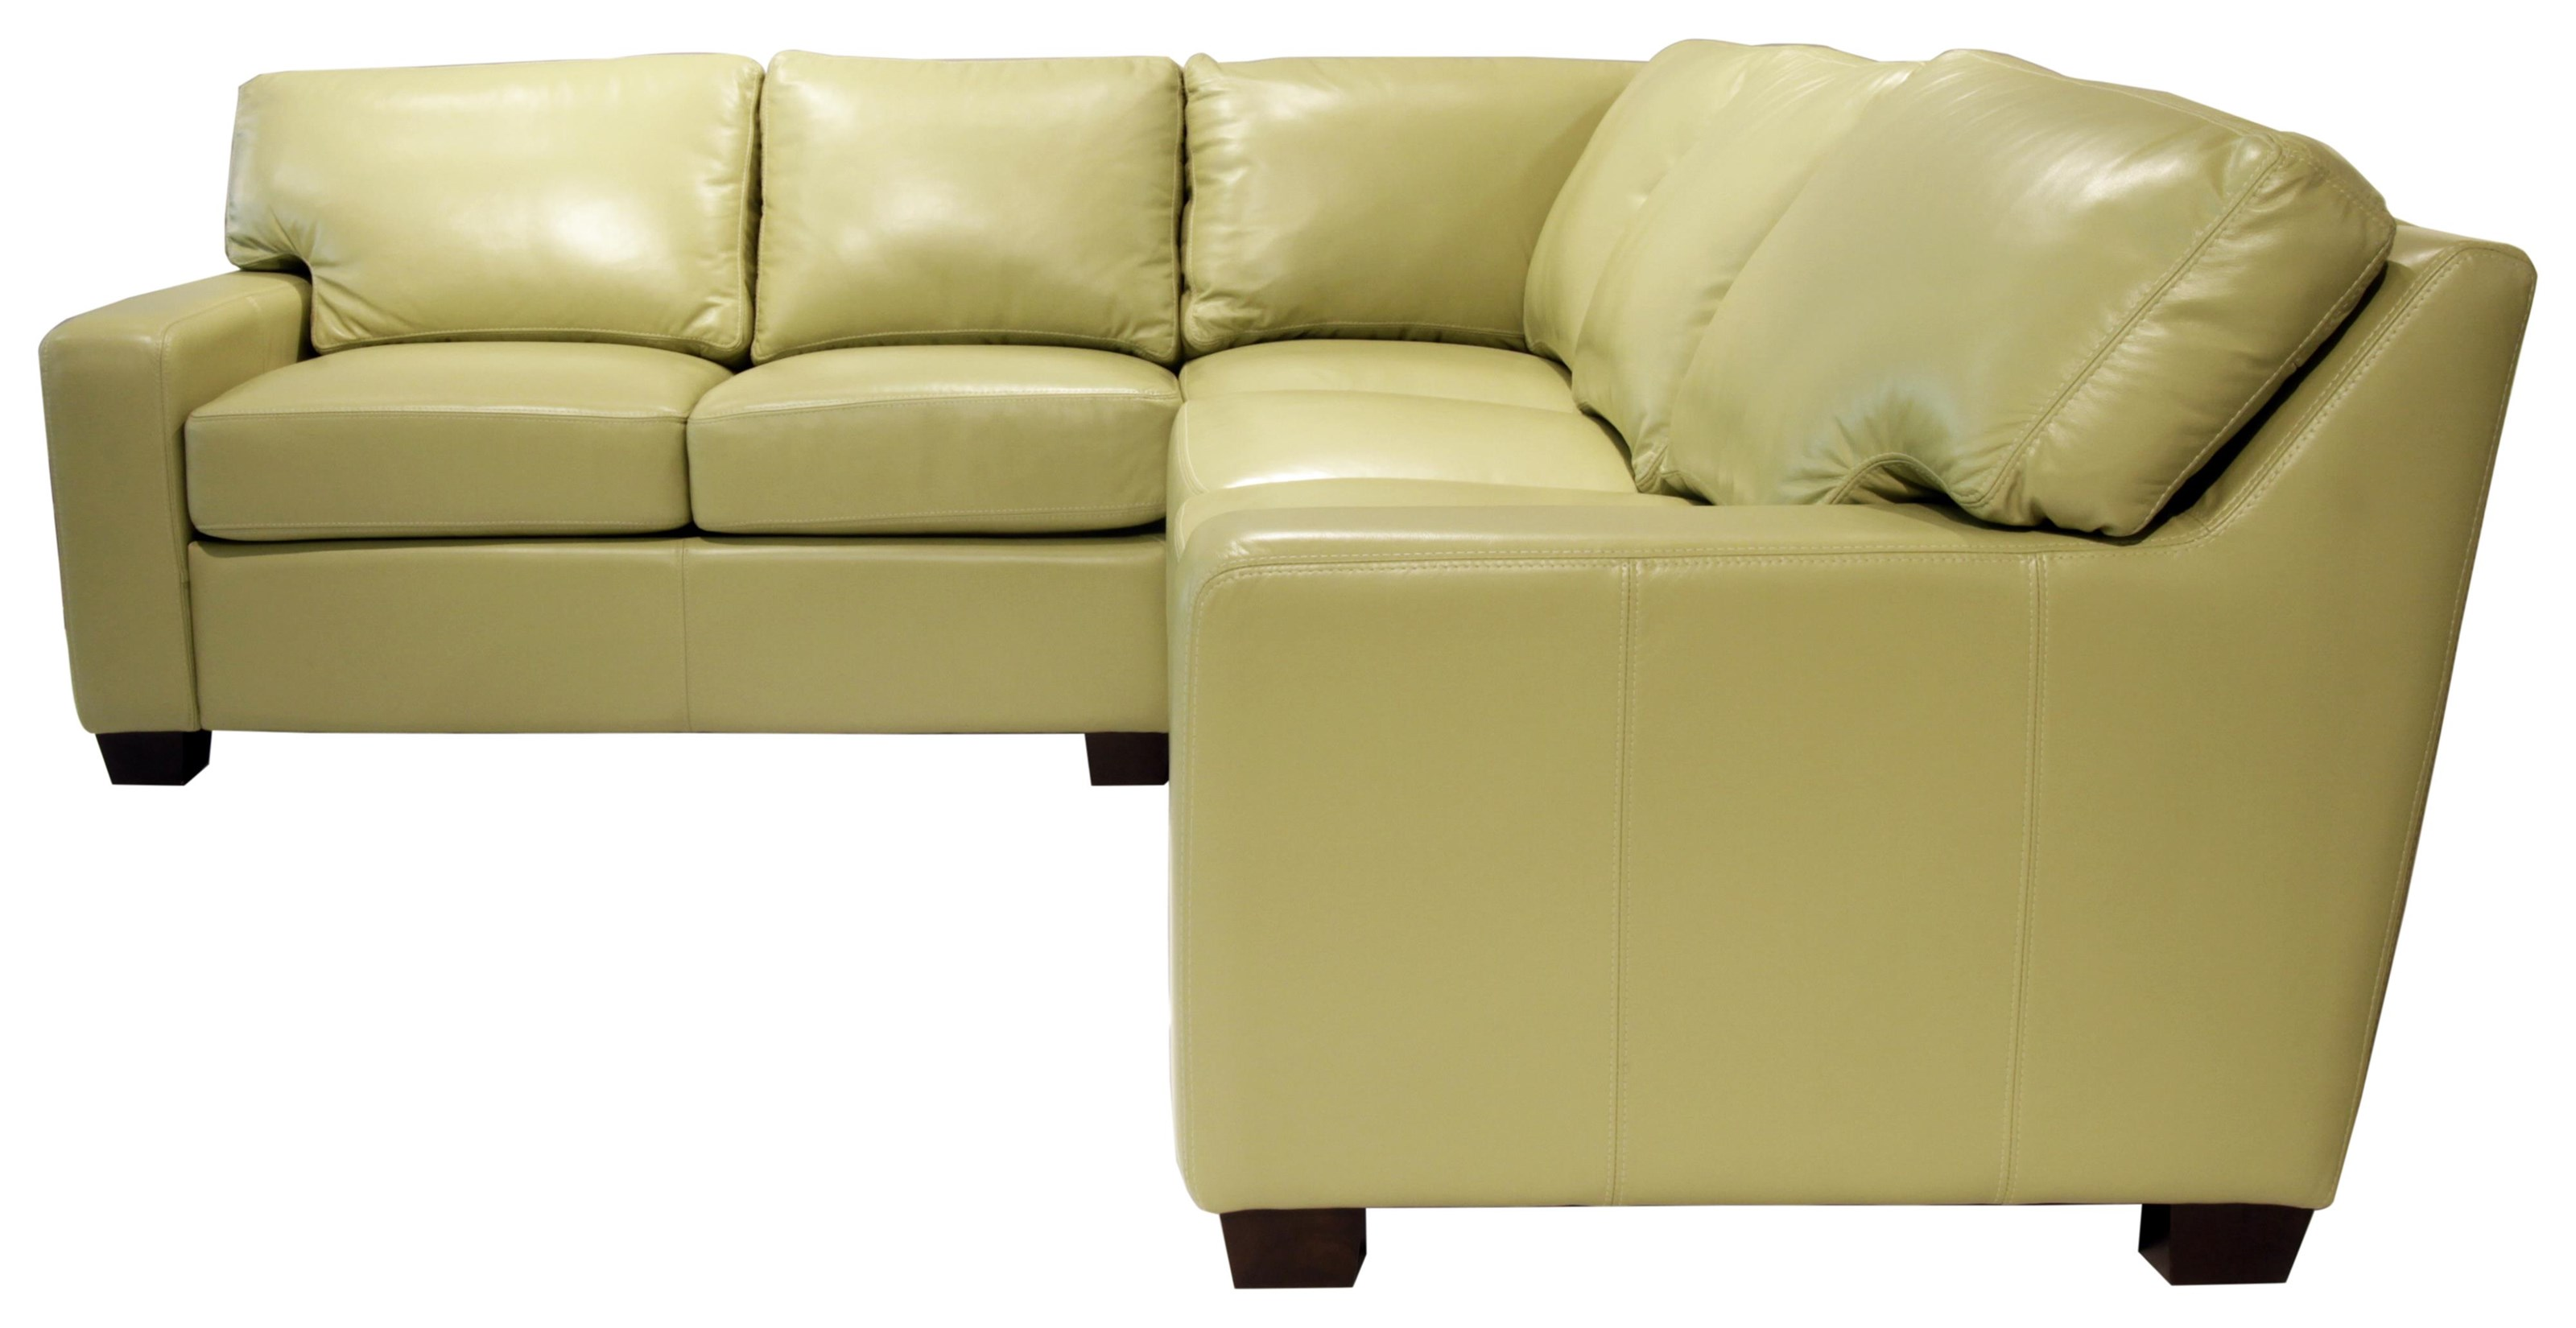 Omnia Leather Albany Sectional - Item Number: 13047+13030